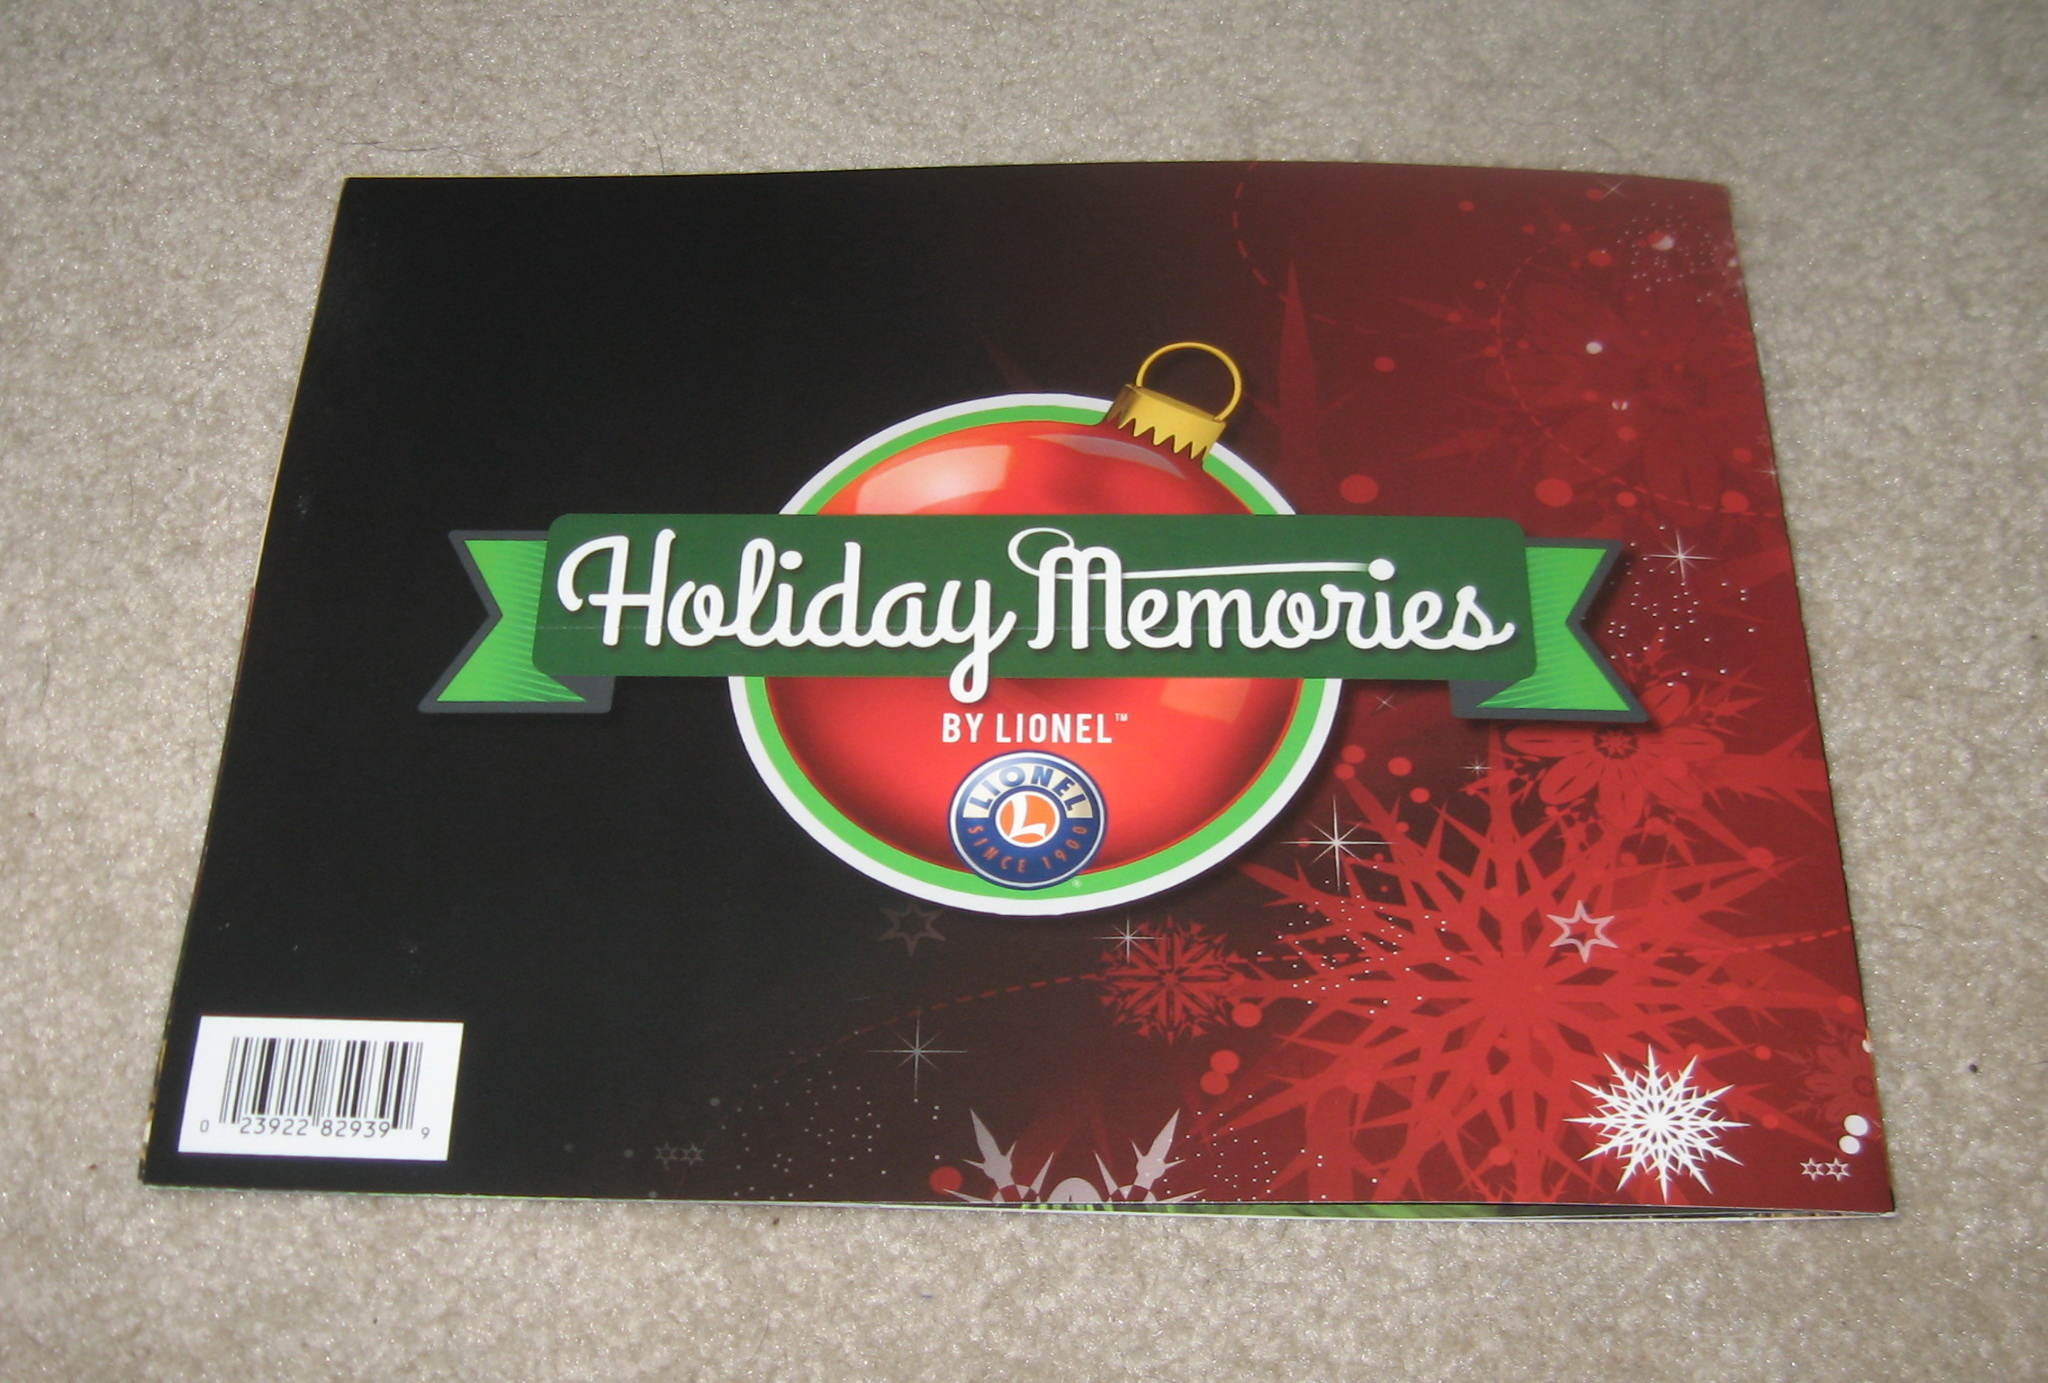 2015 Lionel Trains Holiday Memories Catalog. Mint Condition.